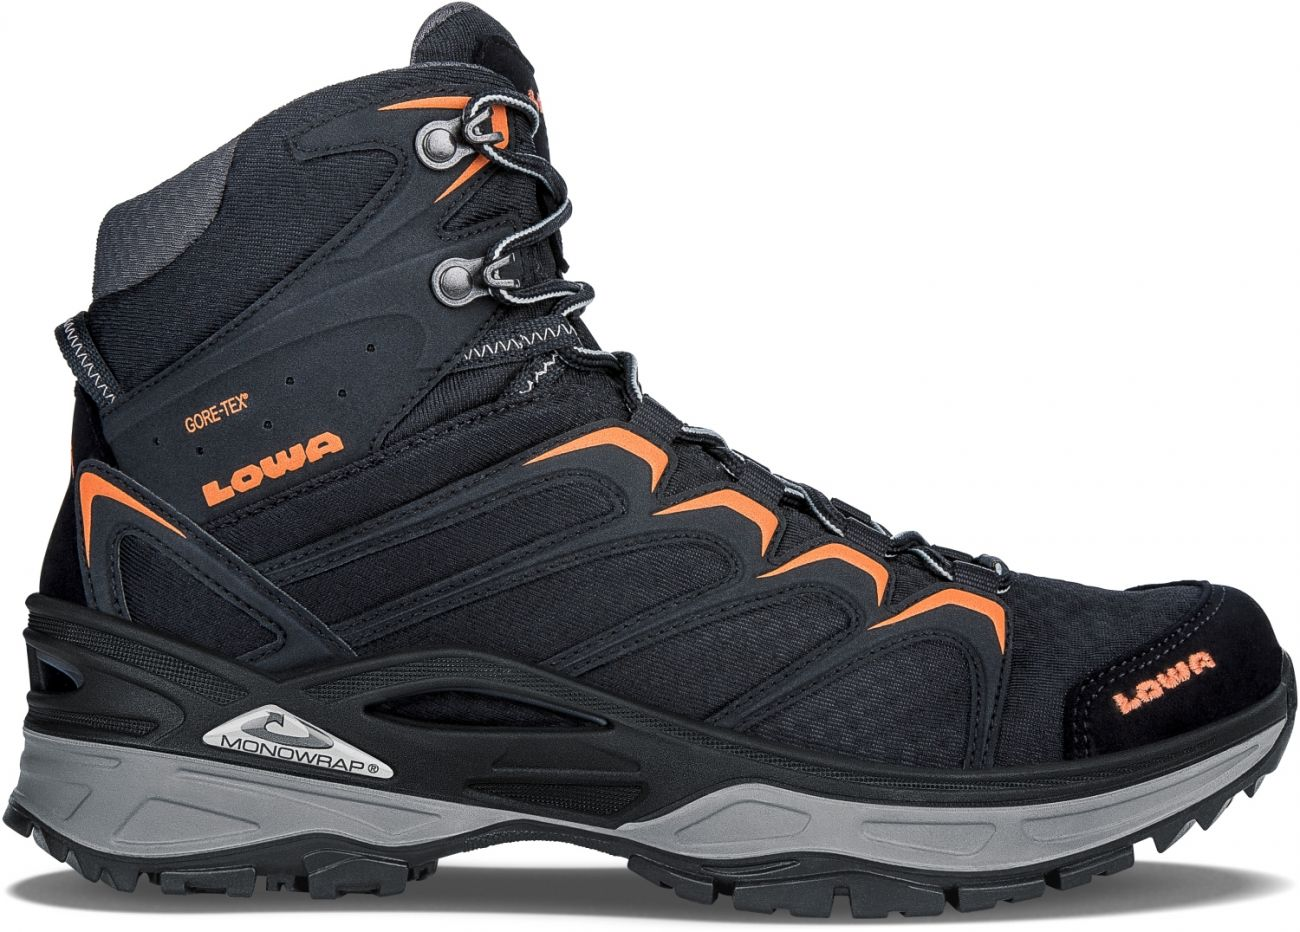 INNOX GTX MID SCHWARZ/ORANGE